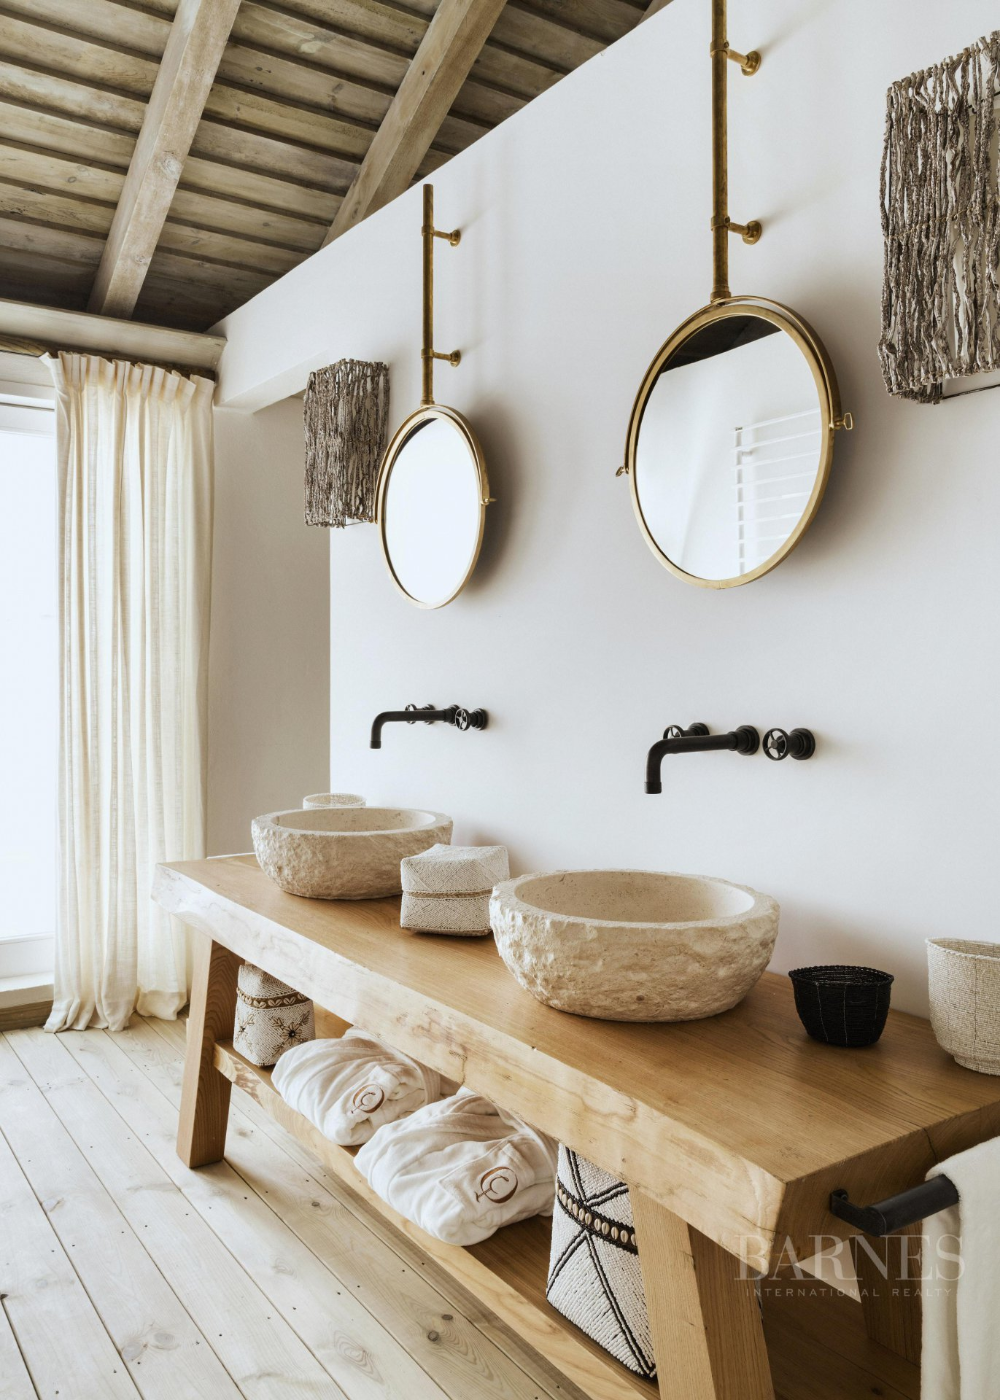 A Sustainable Wellness Hotel In Portugal The Style Files